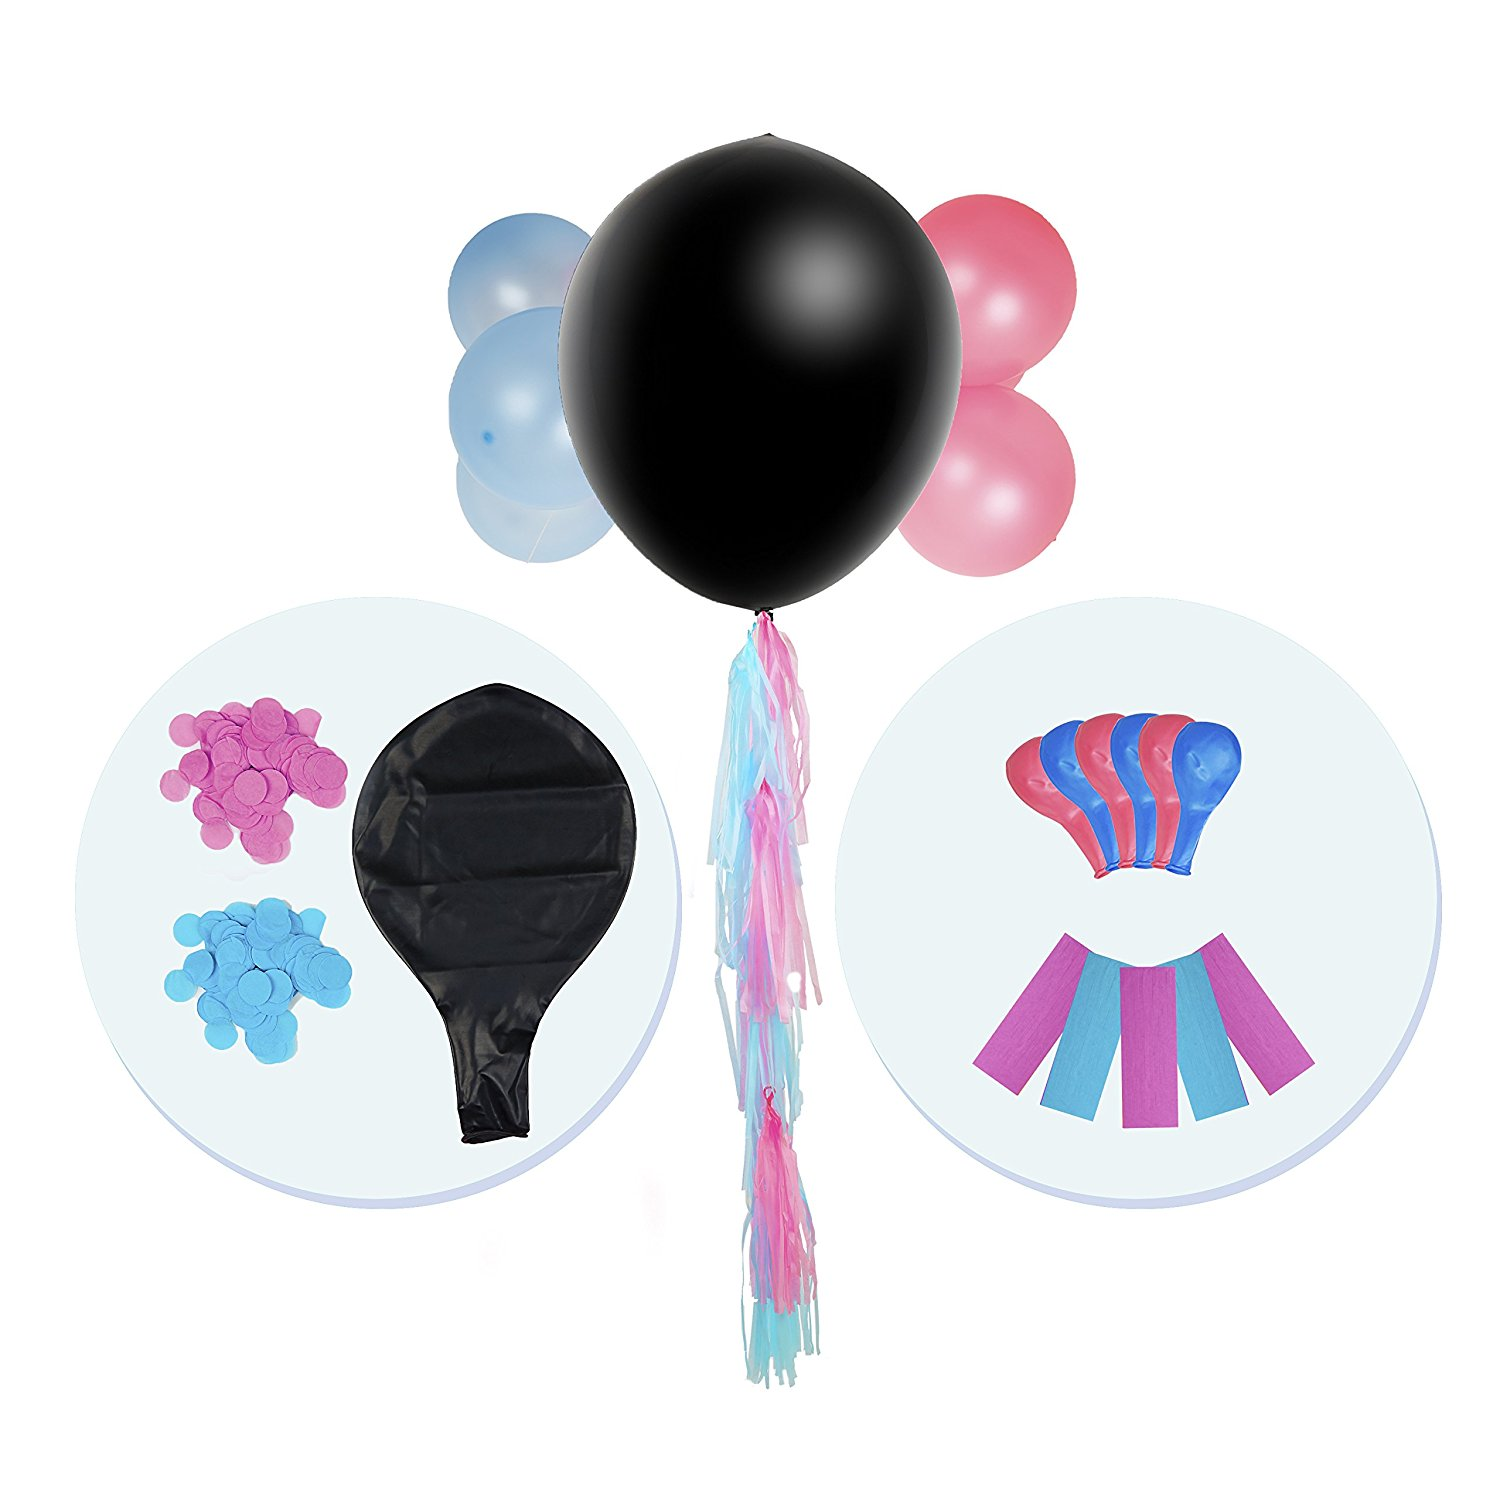 Cute Gender Reveal Kit - Baby Shower & Gender Reveal Party Supplies - Baby Shower Kit with Balloons, Tassels & Cord